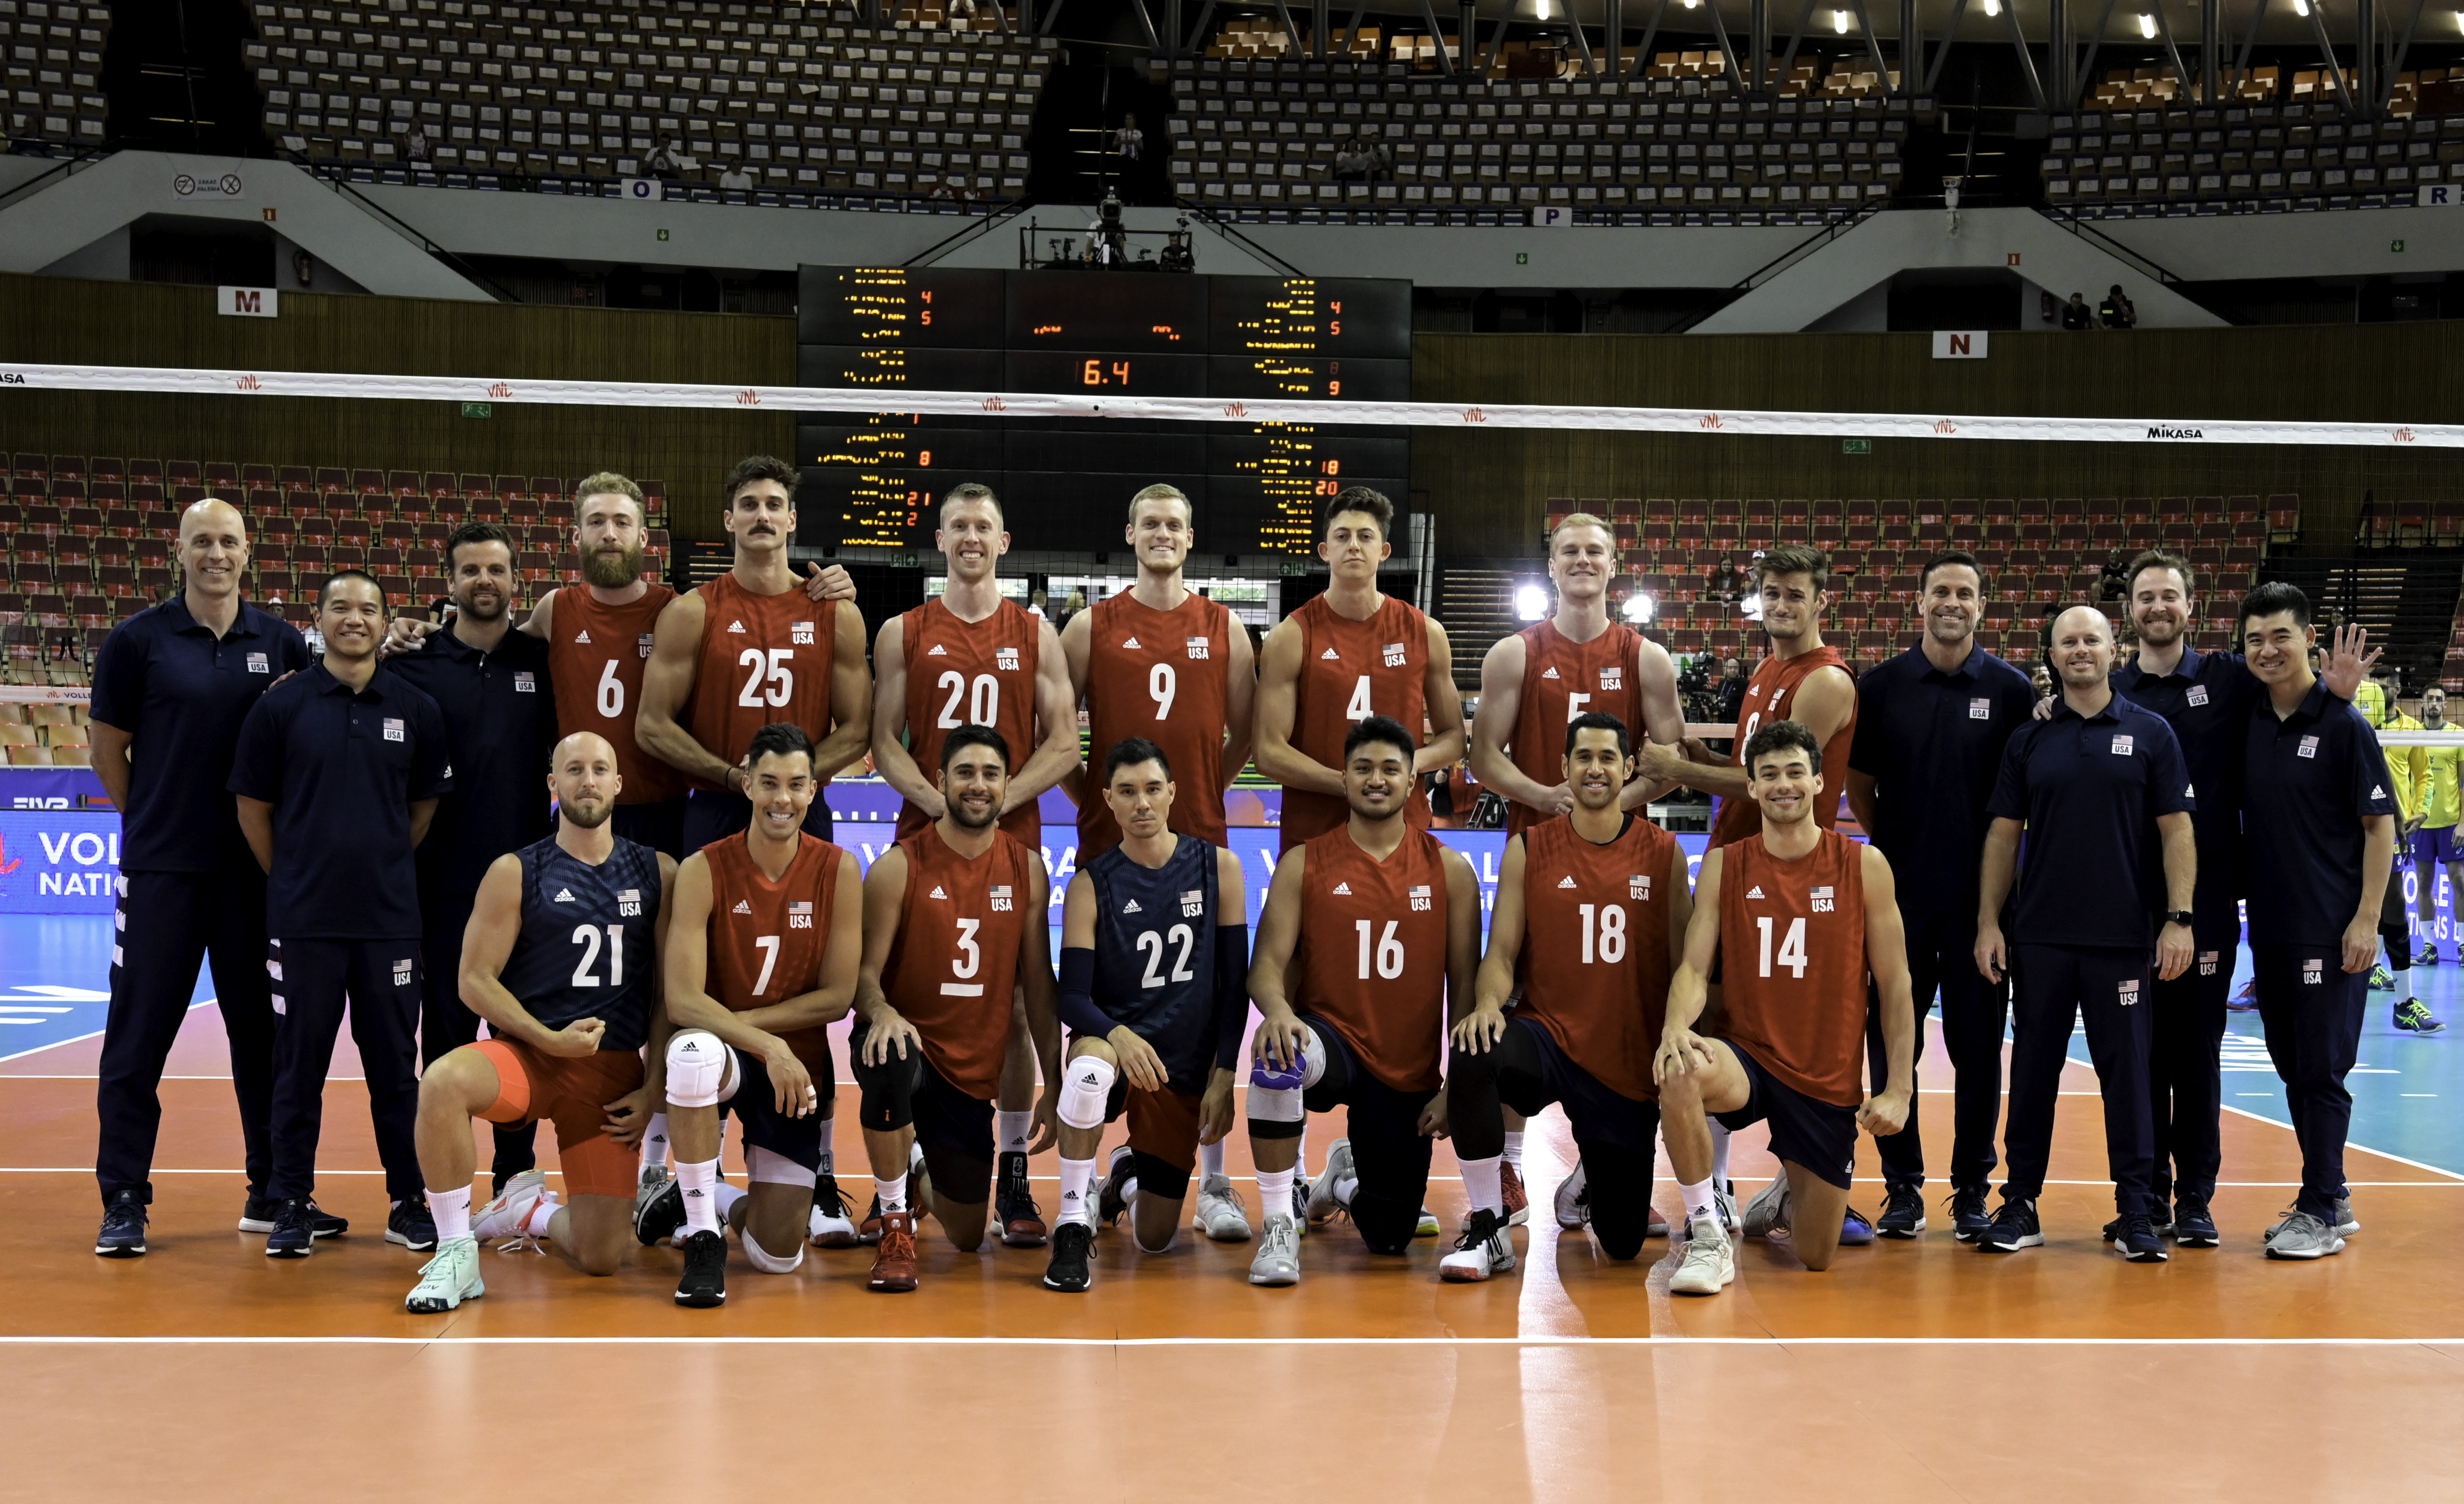 Fivb Volleyball Nations League 2018 Men S Teams Overview Usa Volleyball Nations League 2021